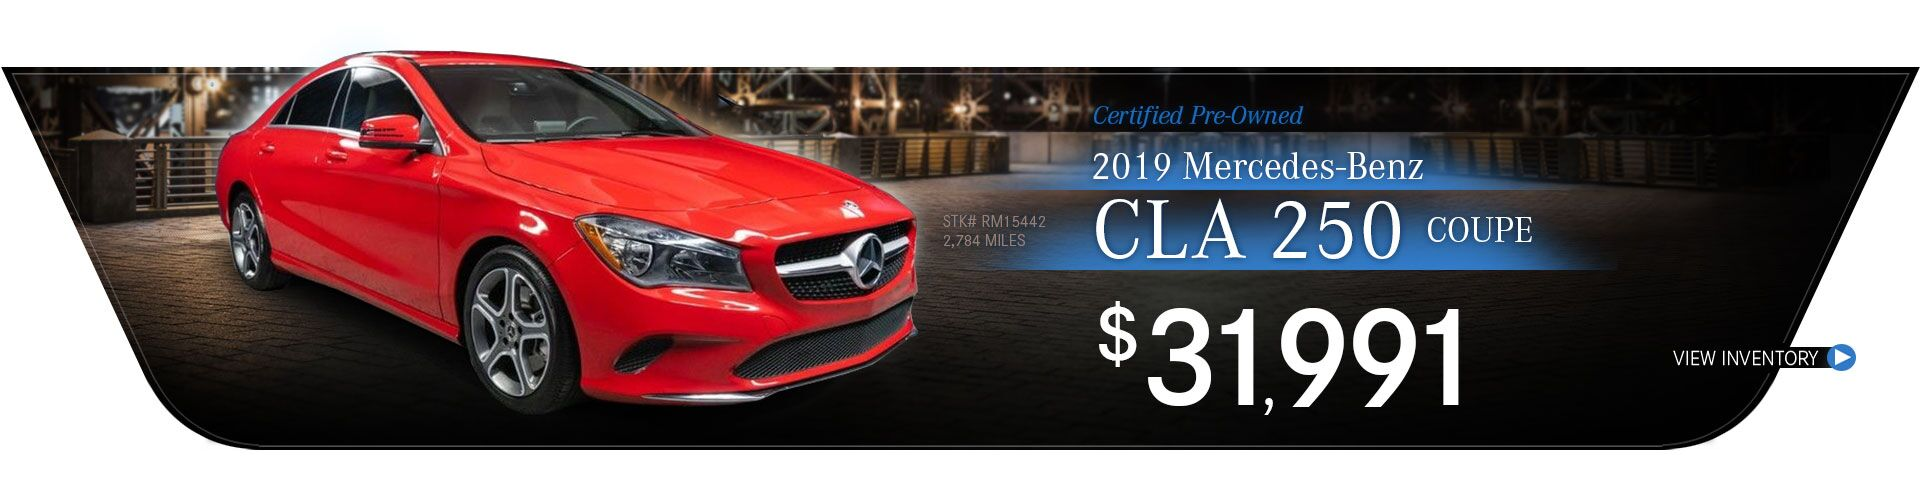 2019 Mercedes-Benz Certified Pre-Owned CLA 250 Coupe